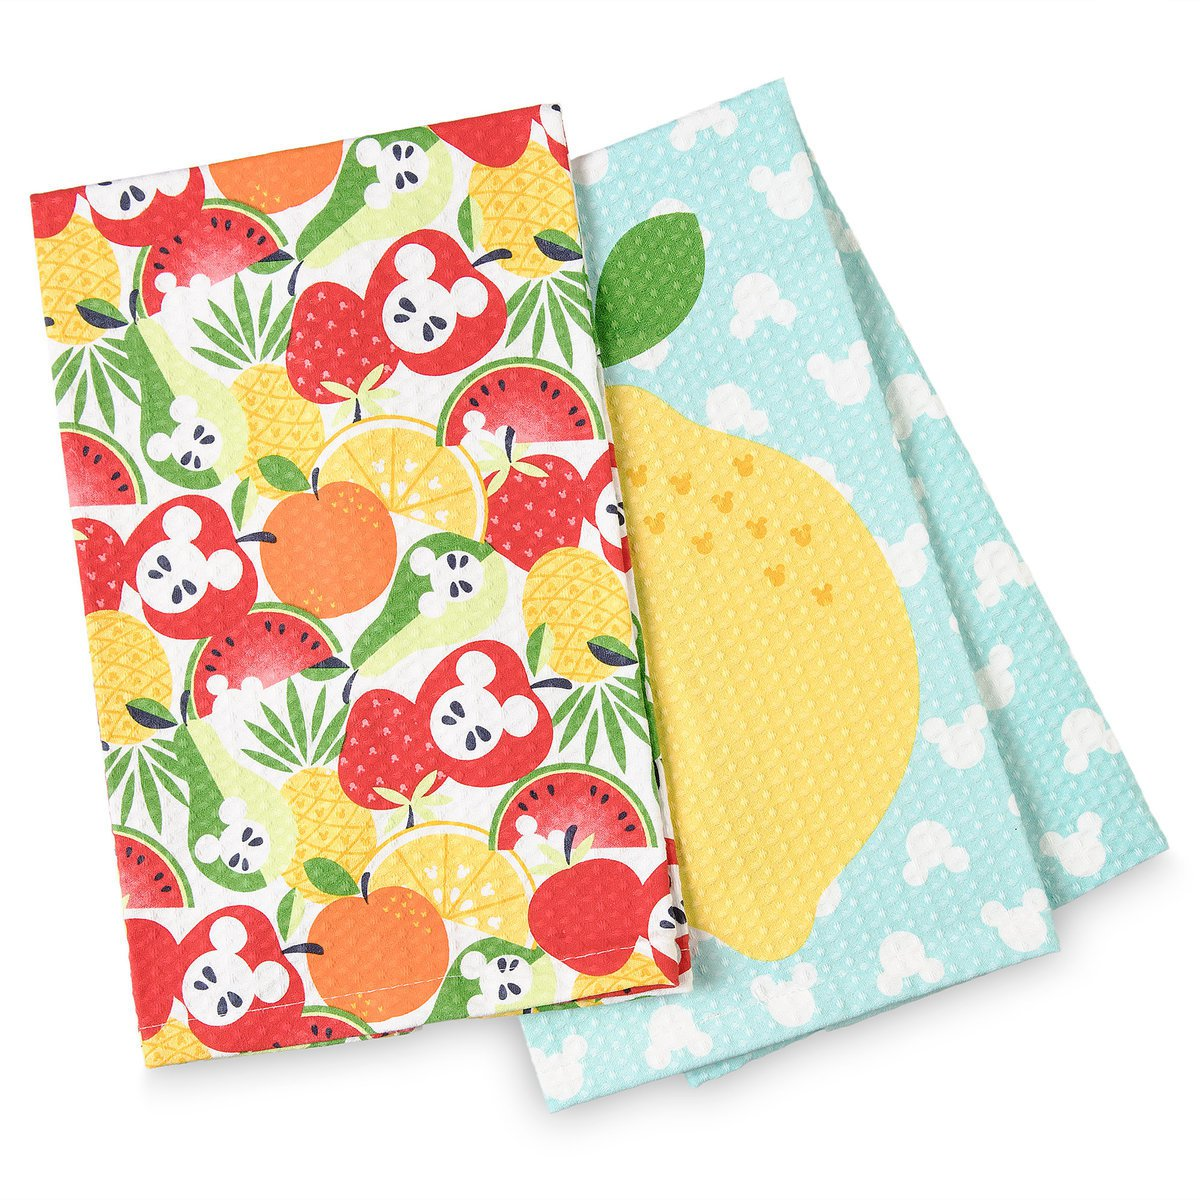 Disney Store Mickey Mouse Kitchen Towels - Summer Fun 2018